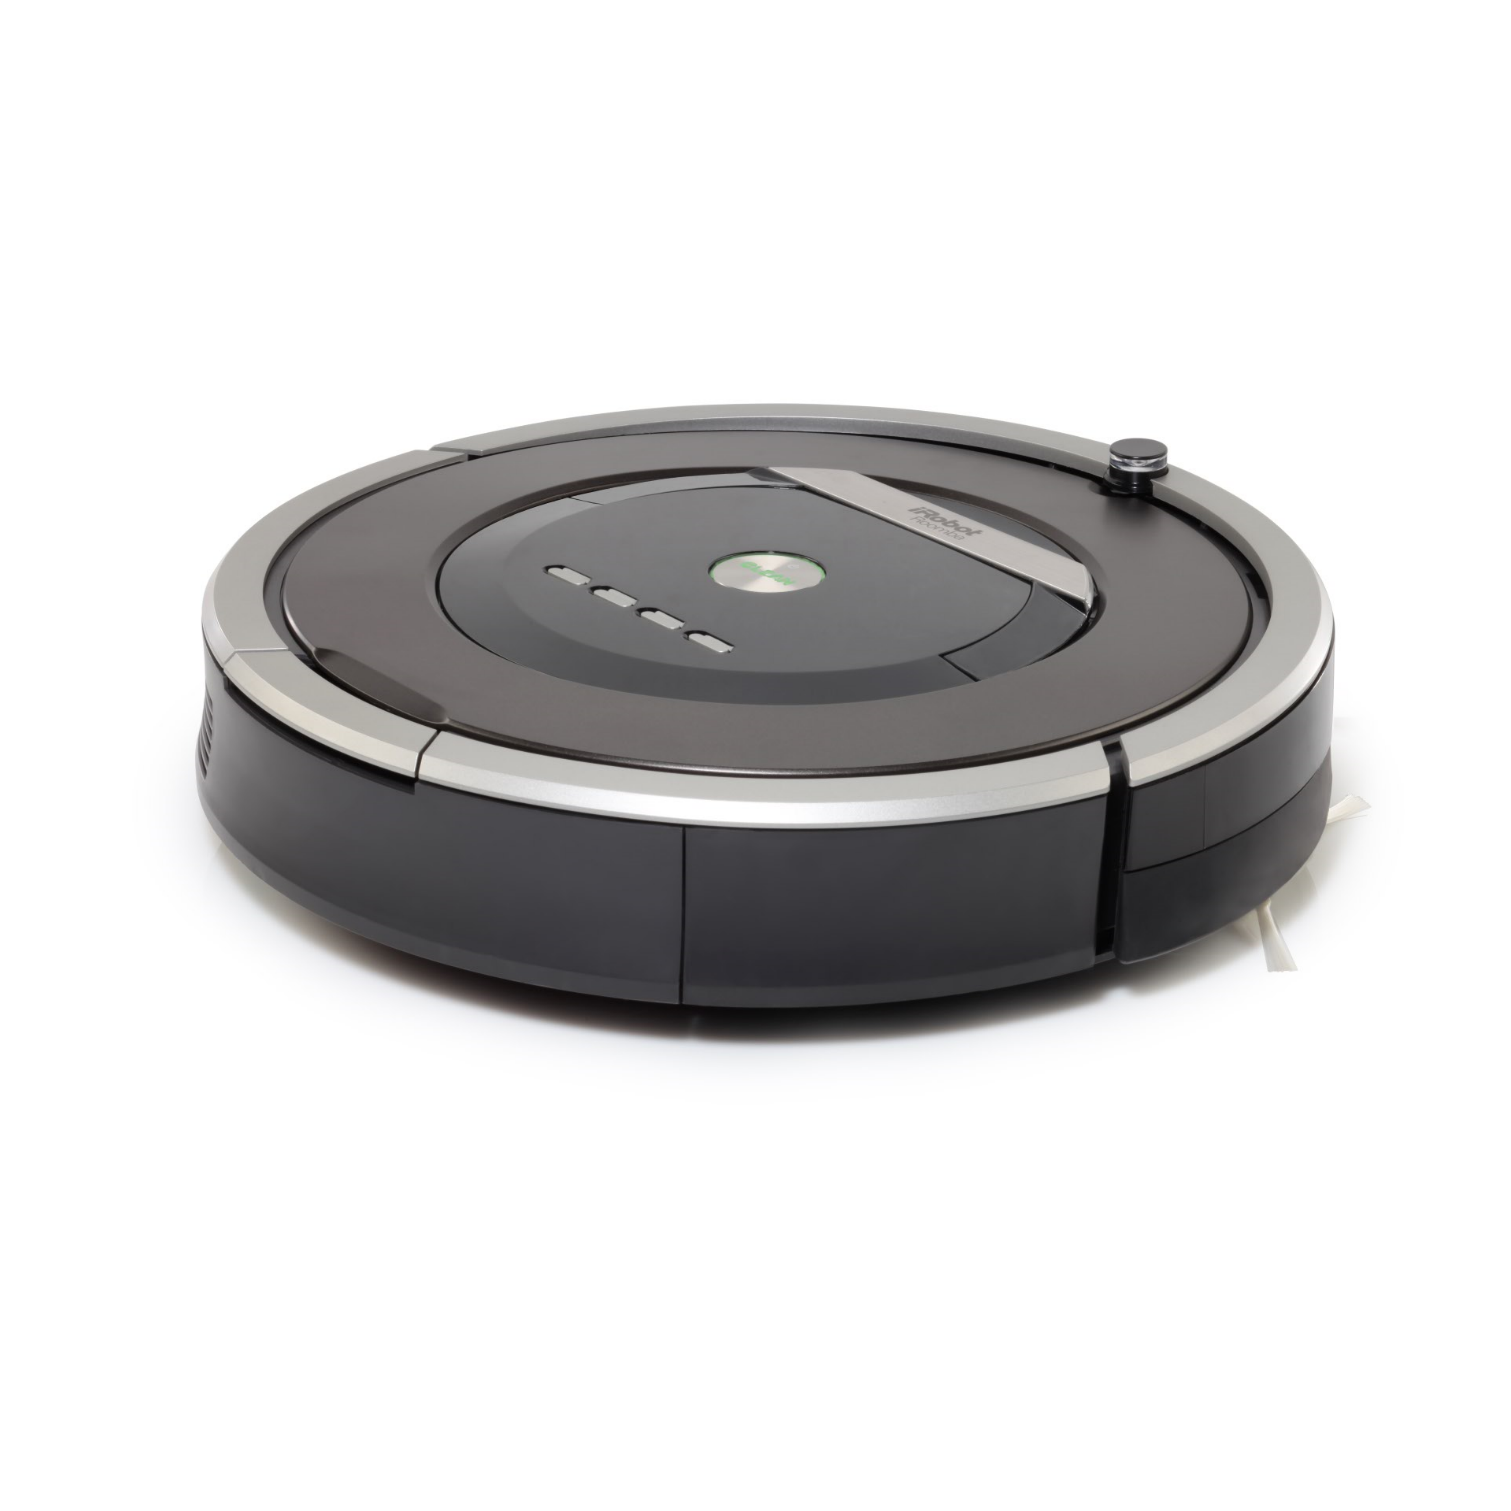 aspirateur robot irobot roomba 870 bestofrobots. Black Bedroom Furniture Sets. Home Design Ideas